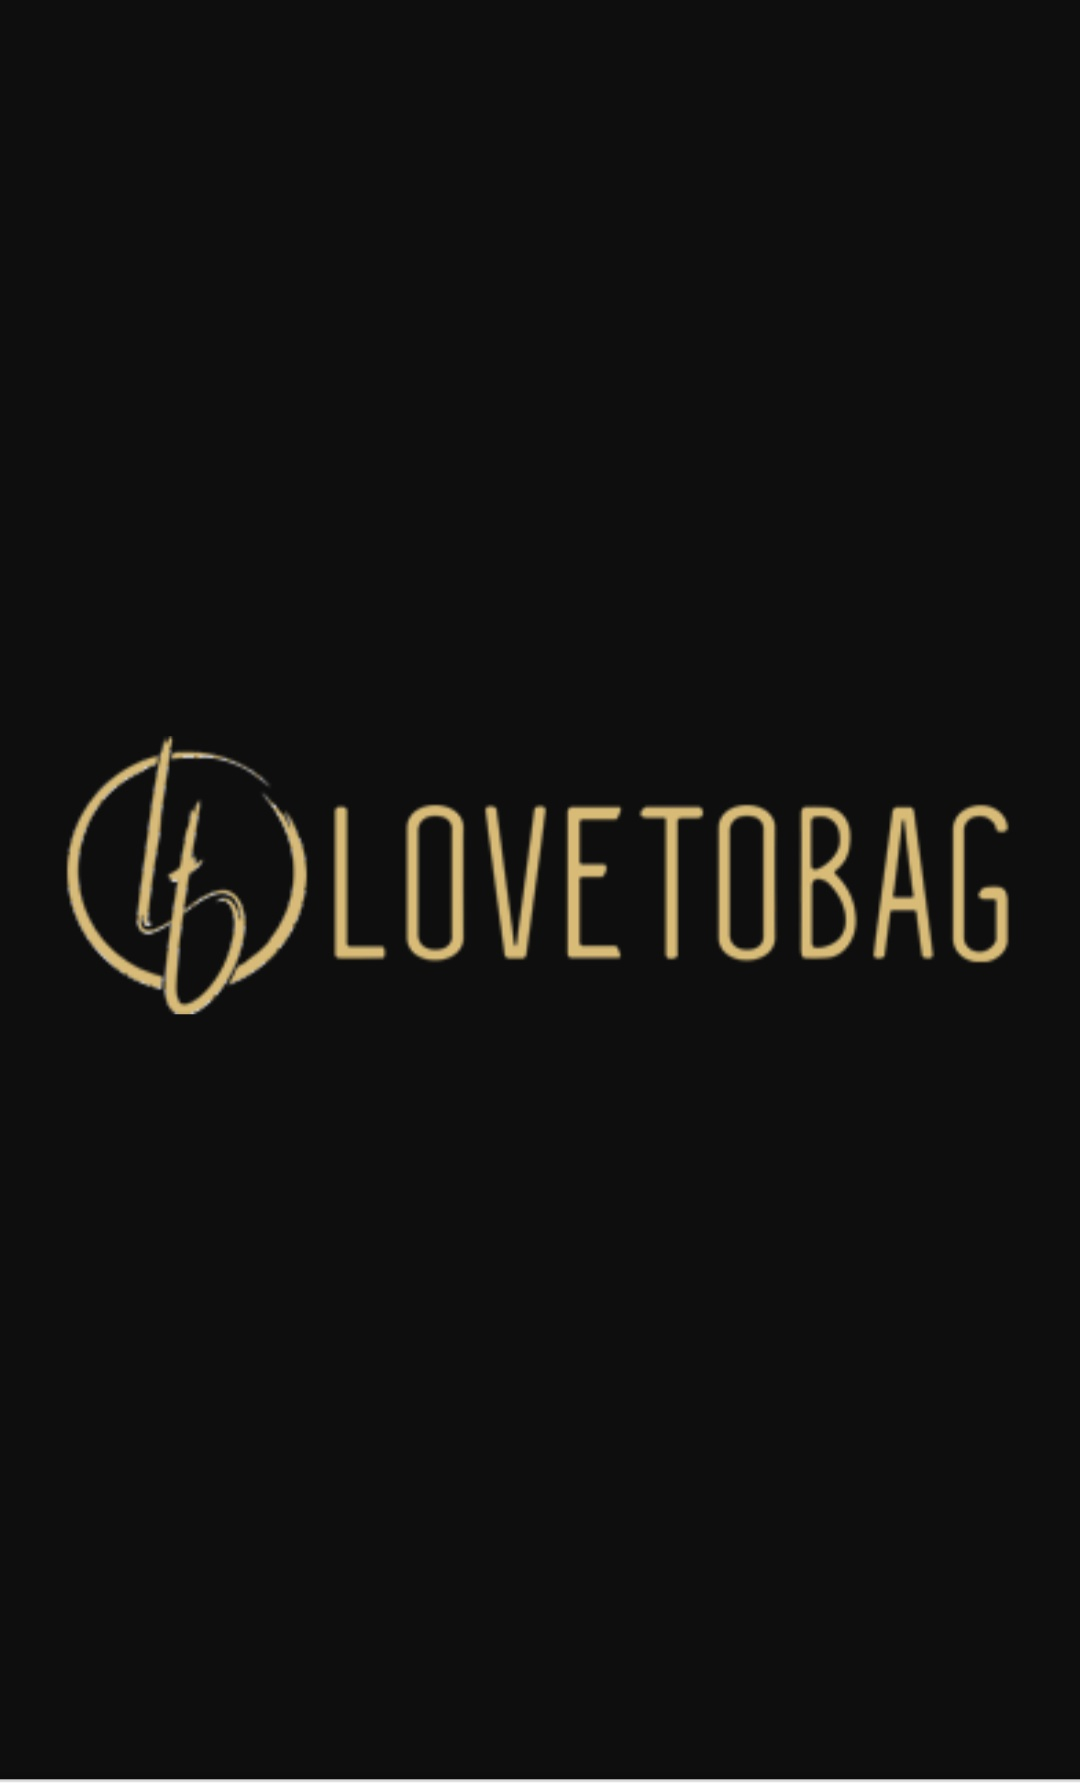 graphic-designer-delhi-Lovetobag-Accessories-Pvt.-Ltd.-1years-2years-full-time